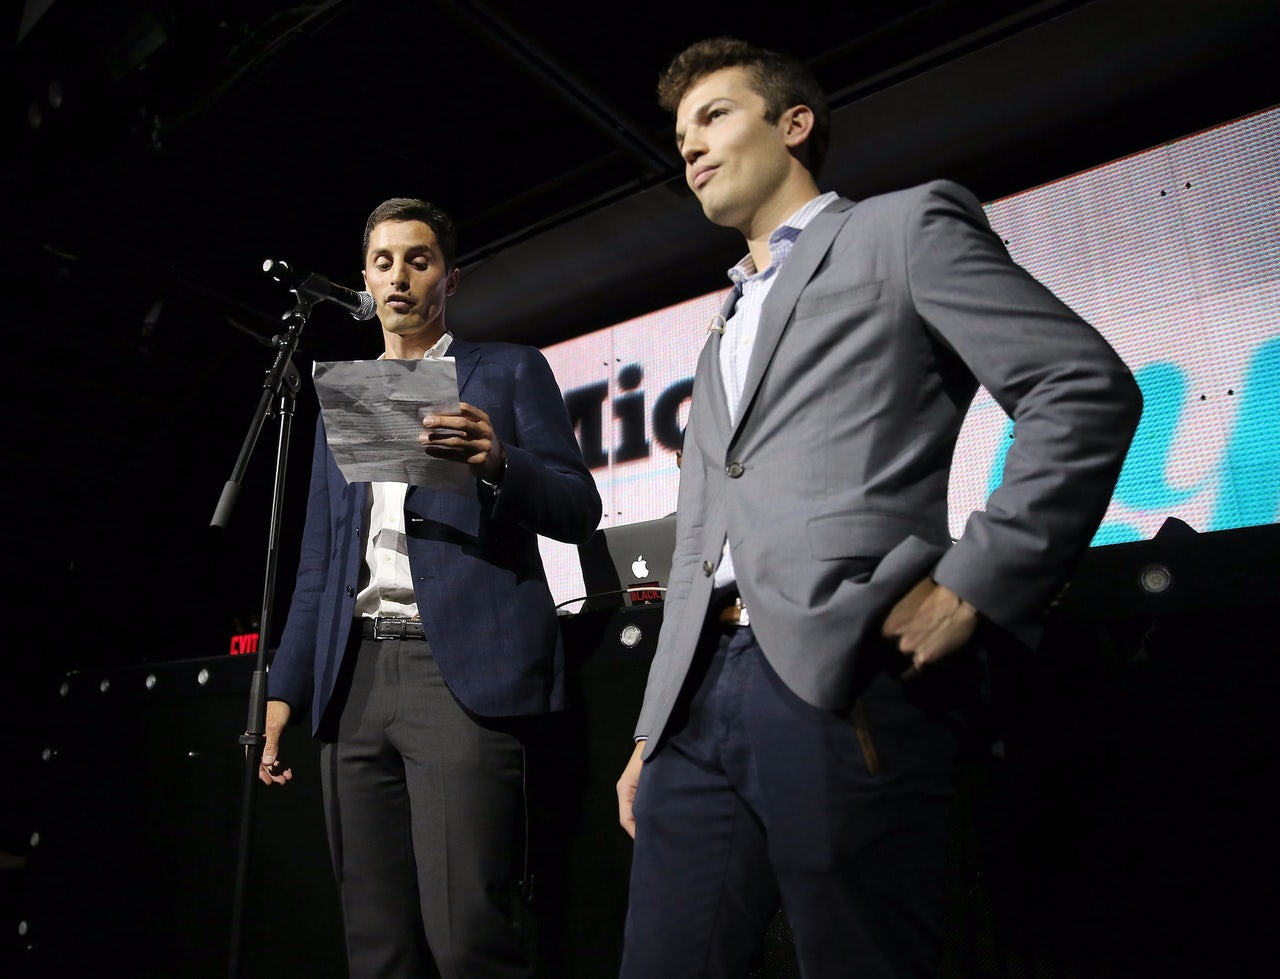 From left, Mic.com co-founders Chris Altchek and Jake Horowitz at the Mic50 Awards in June 2015.